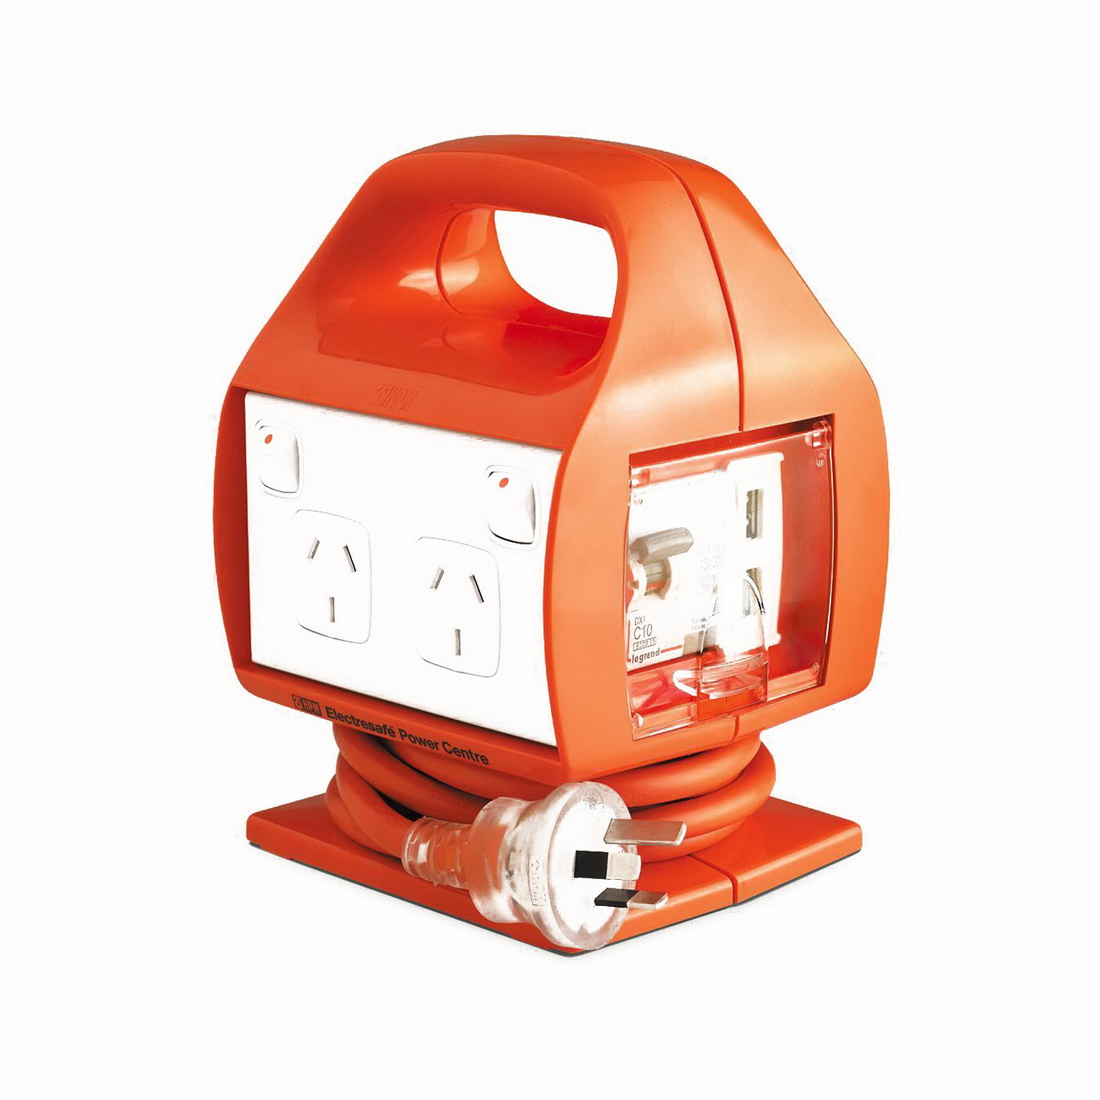 Electresafe 4-Outlet Flexible Heavy Duty Power Center with USB